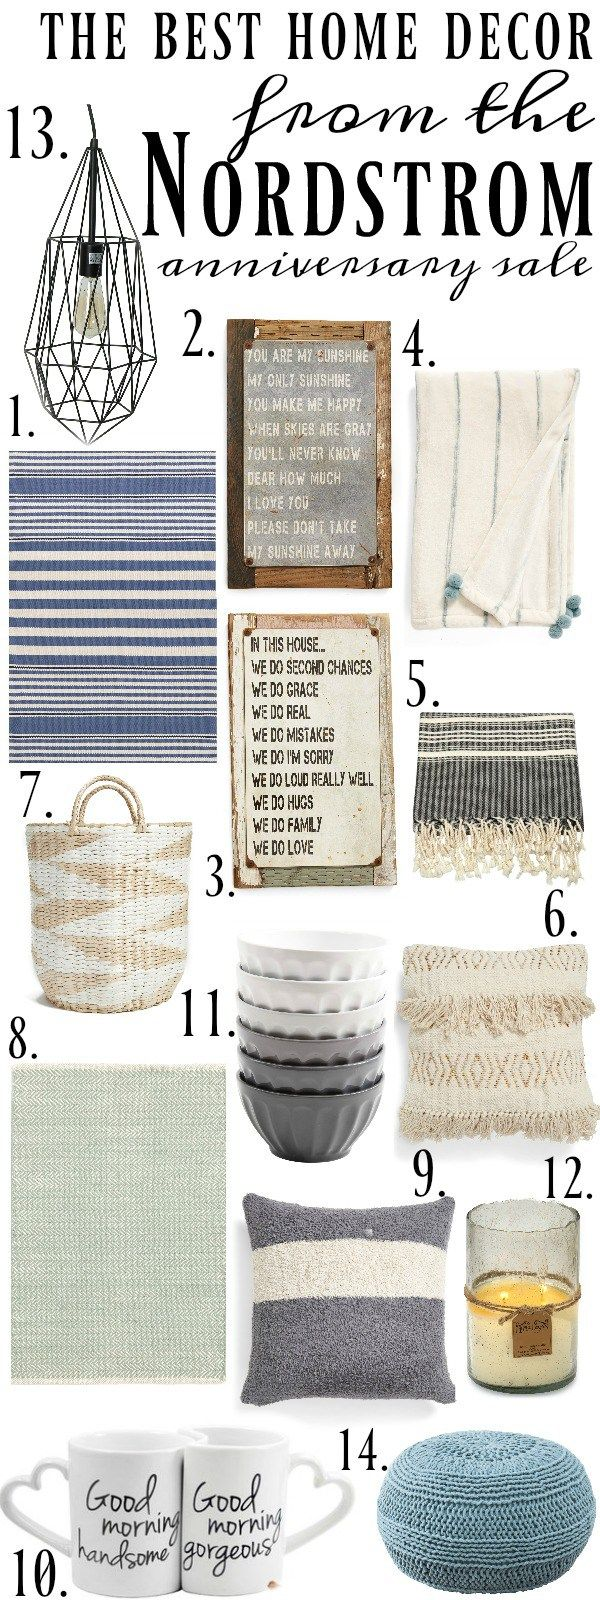 2672 best images about home decor love on pinterest miss Nordstrom home decor sale